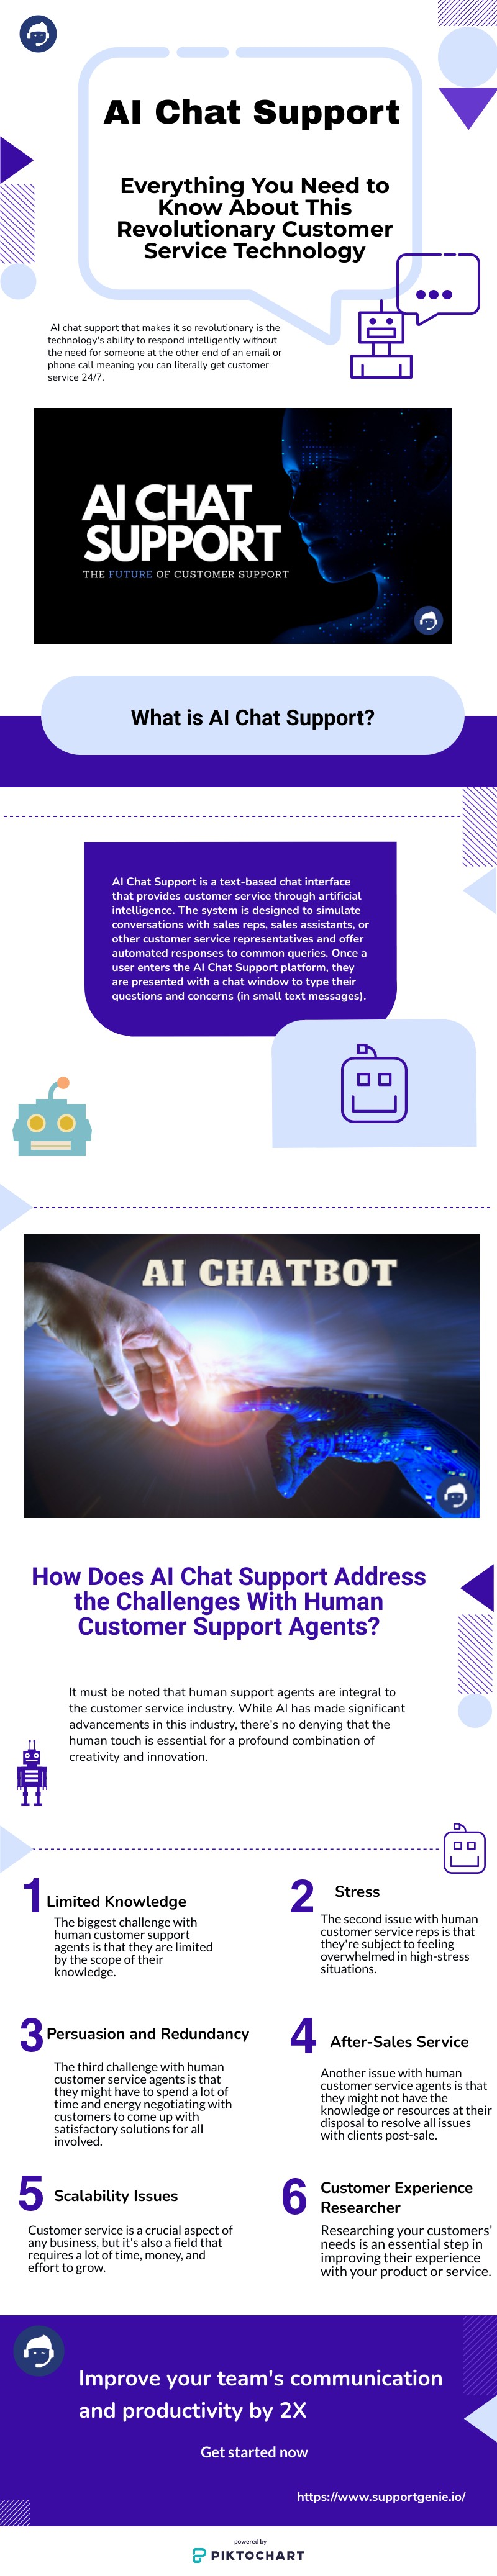 ai chat support